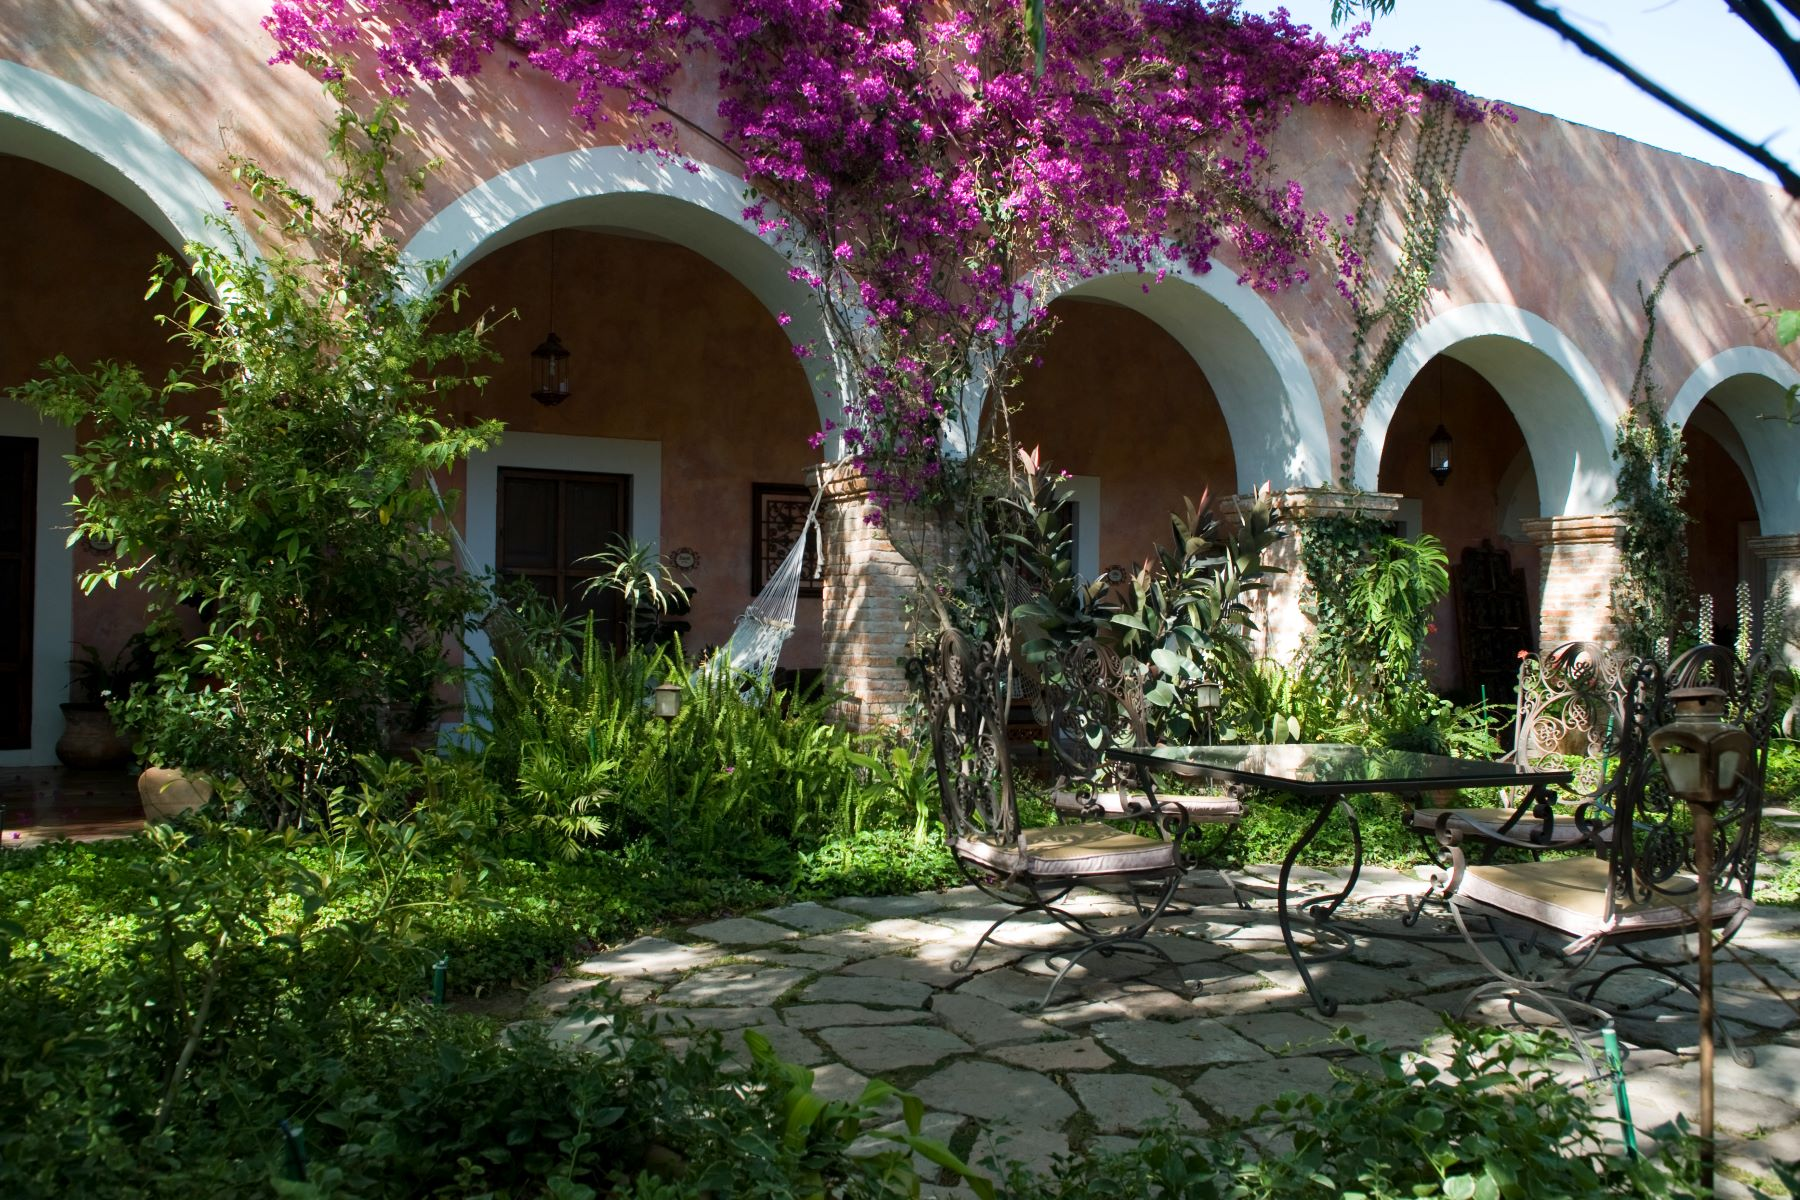 Single Family Home for Sale at Hacienda Las Trancas Carretera a Dolores San Miguel De Allende, Guanajuato 37700 Mexico